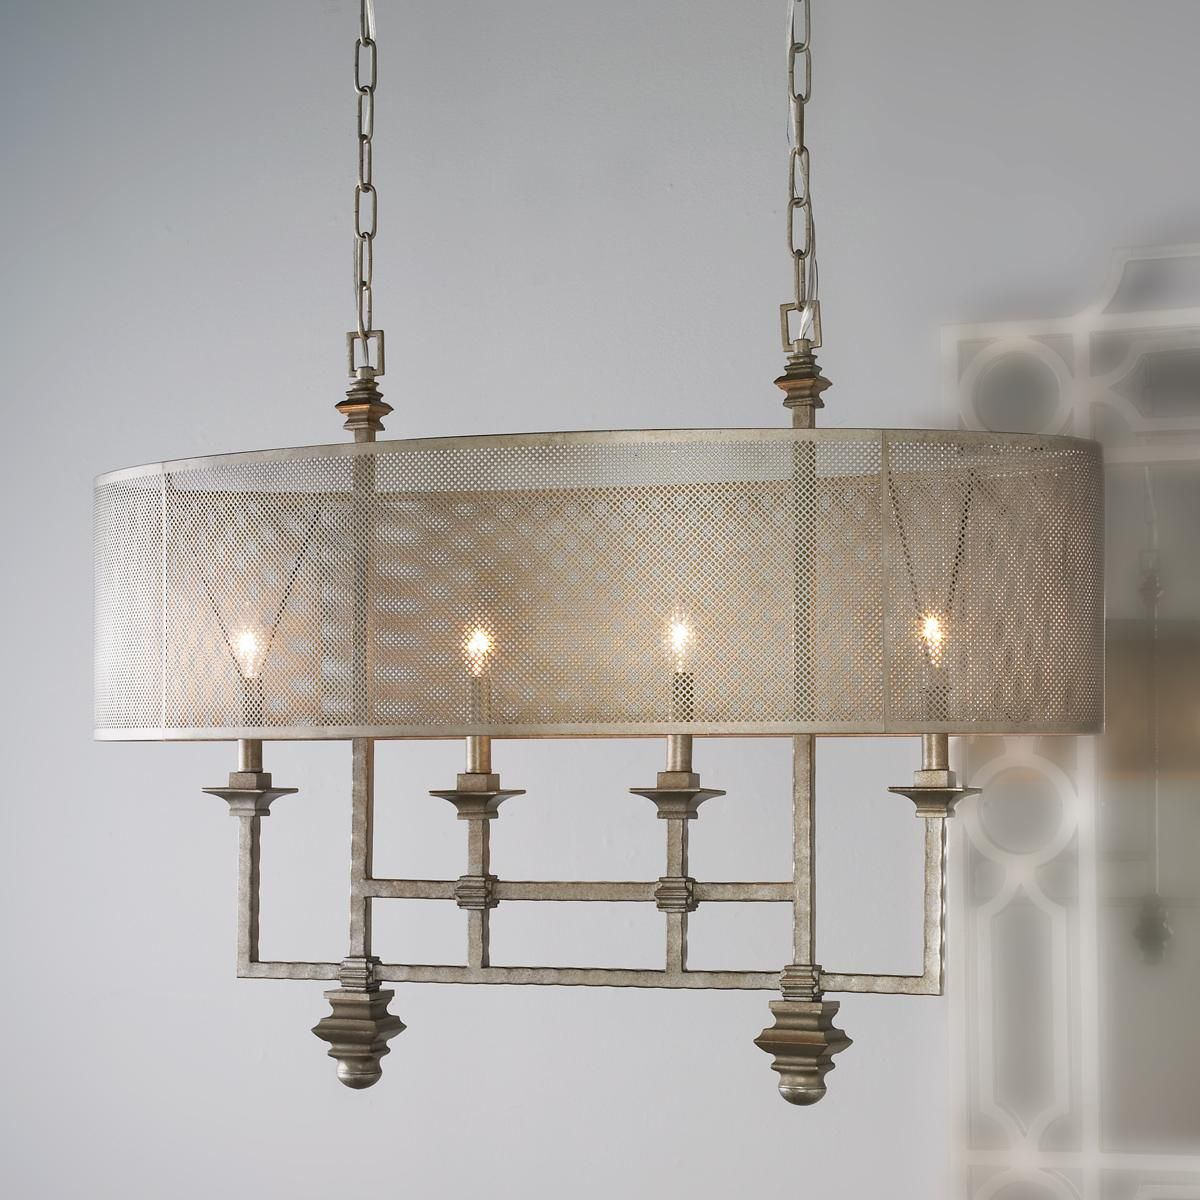 Mesh Screen Shade Chandelier Shades Of Light Chandelier Shades Kitchen Chandelier Lights Over Dining Table